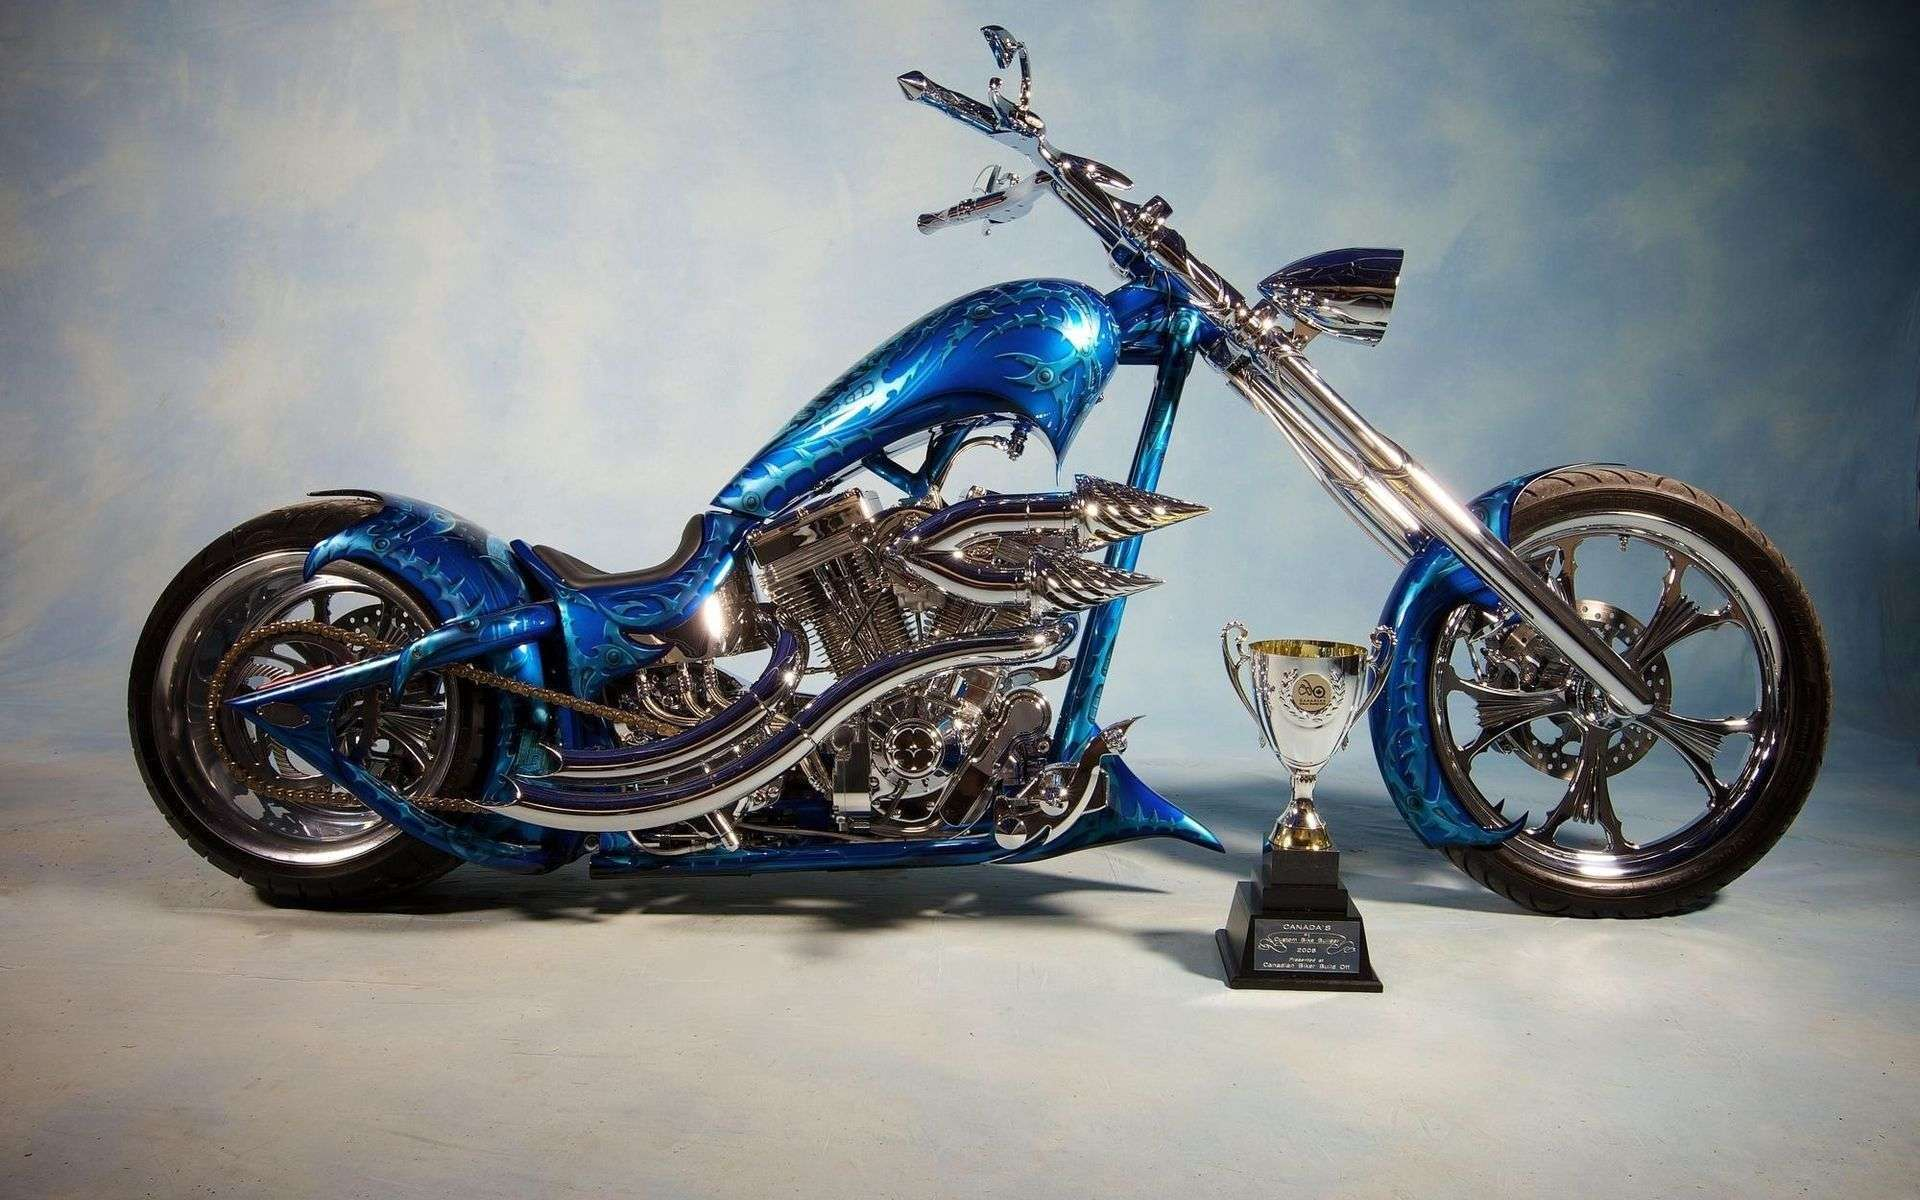 chopper motorcycles wallpaper - photo #5